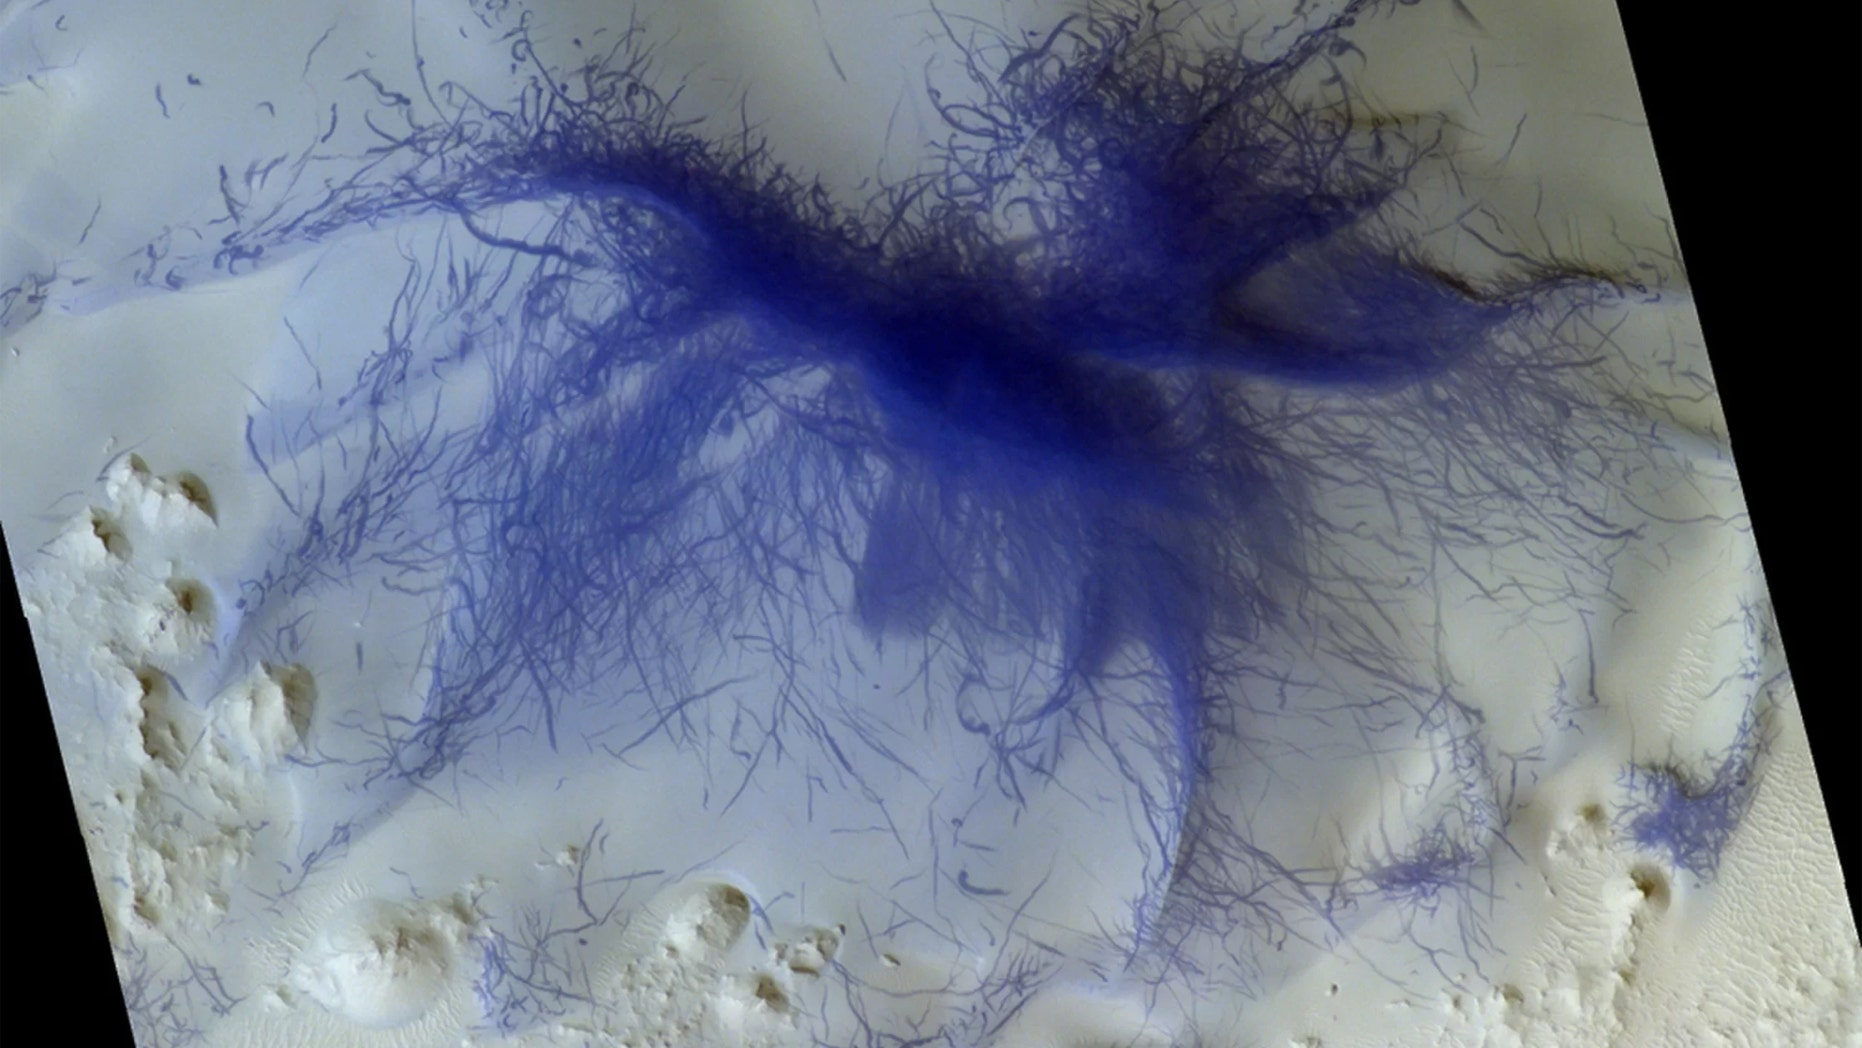 A feature on Mars that looks like a very hairy spider was likely caused by the convergence of hundreds or even thousands of tornadoes. (Credit: ESA/Roscosmos/CaSSIS, CC BY-SA 3.0 IGO)